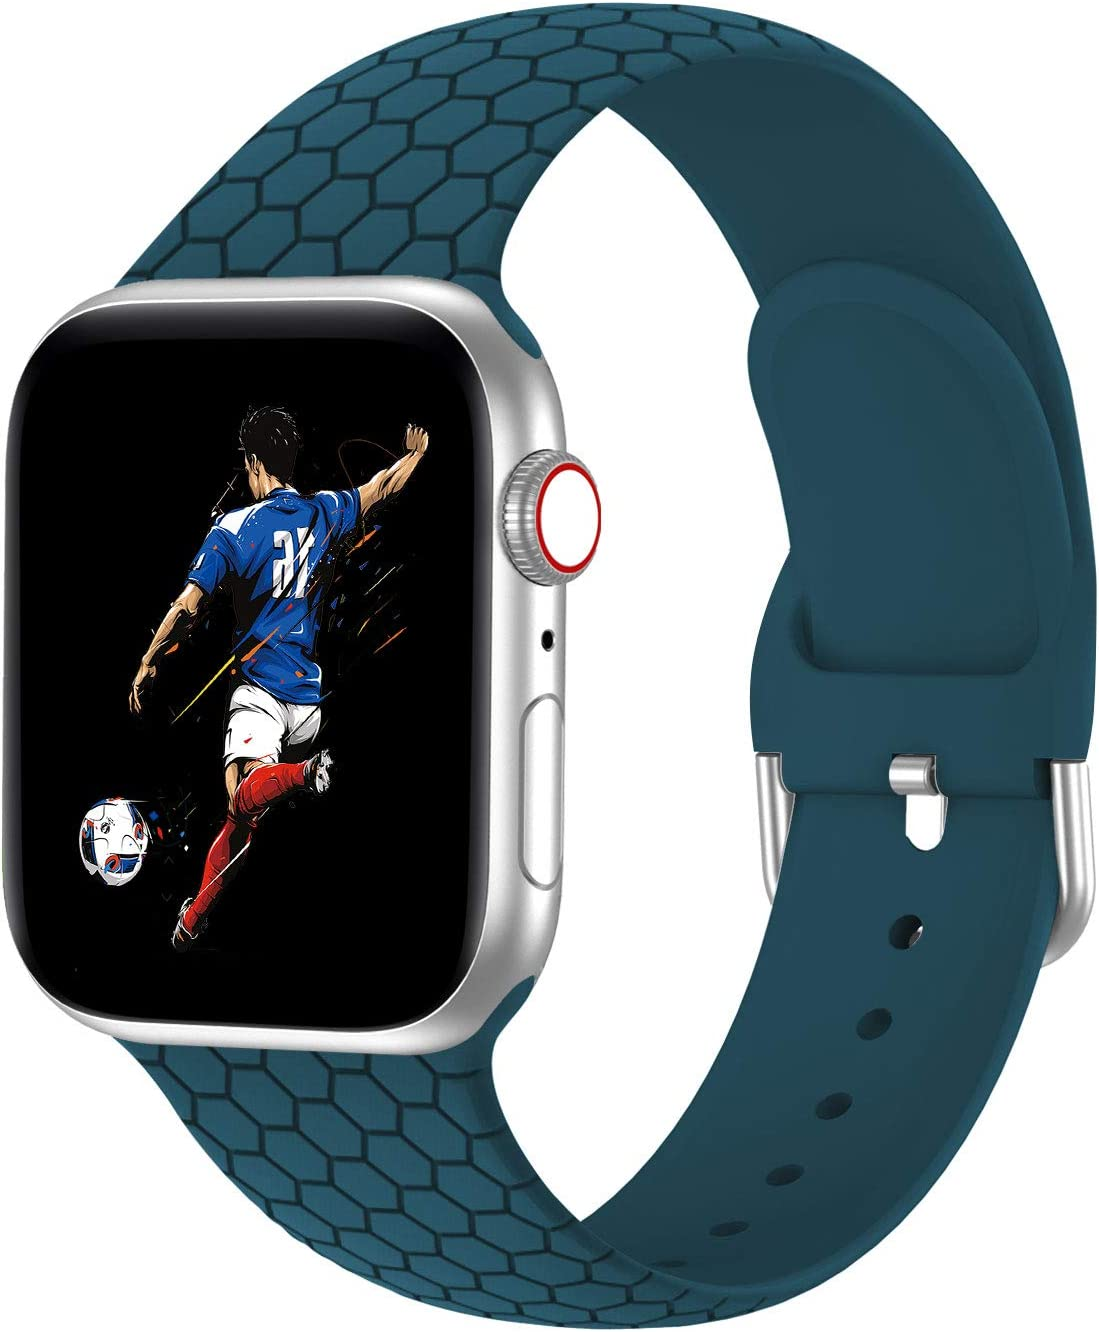 Bandiction Watch Band Compatible with Apple Watch 38mm 40mm 42mm 44mm, Soft Silicone Sport Replacement Strap Compatible for iWatch Series SE 6 5 4 3 2 1, Pacific Green